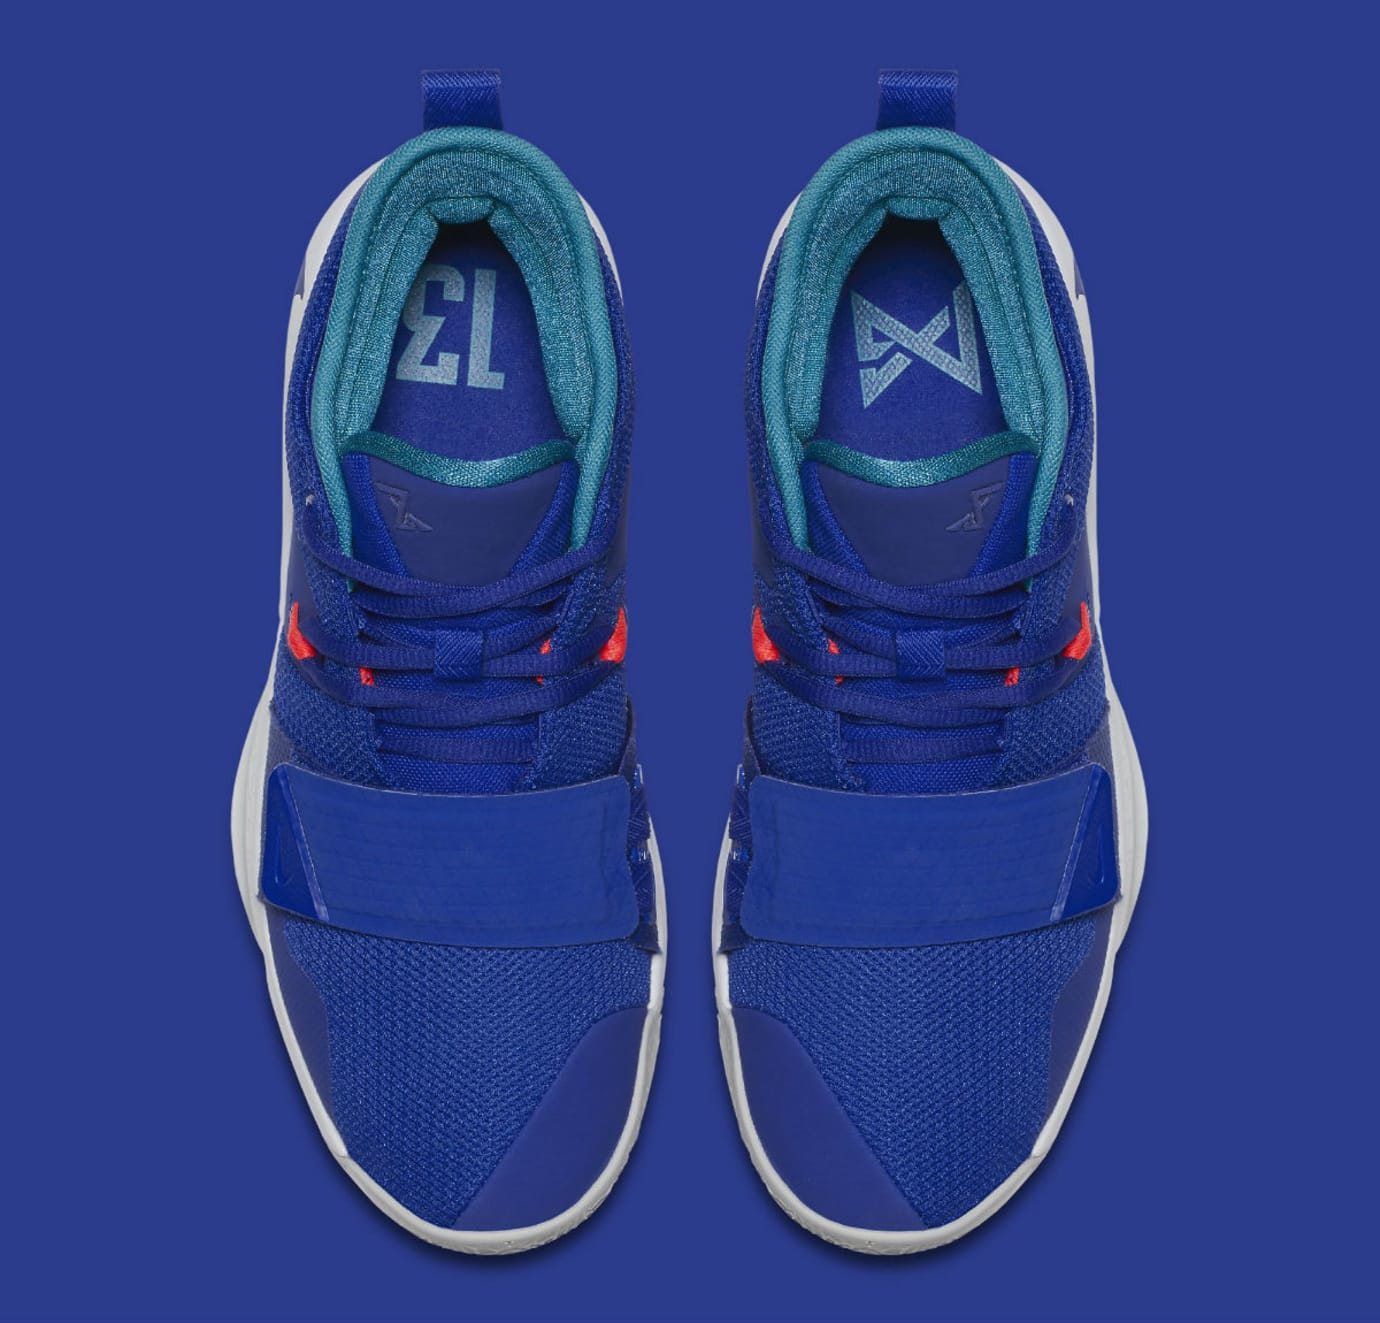 Nike PG 2.5 Fortnite Racer Blue Release Date BQ8452-401 Top